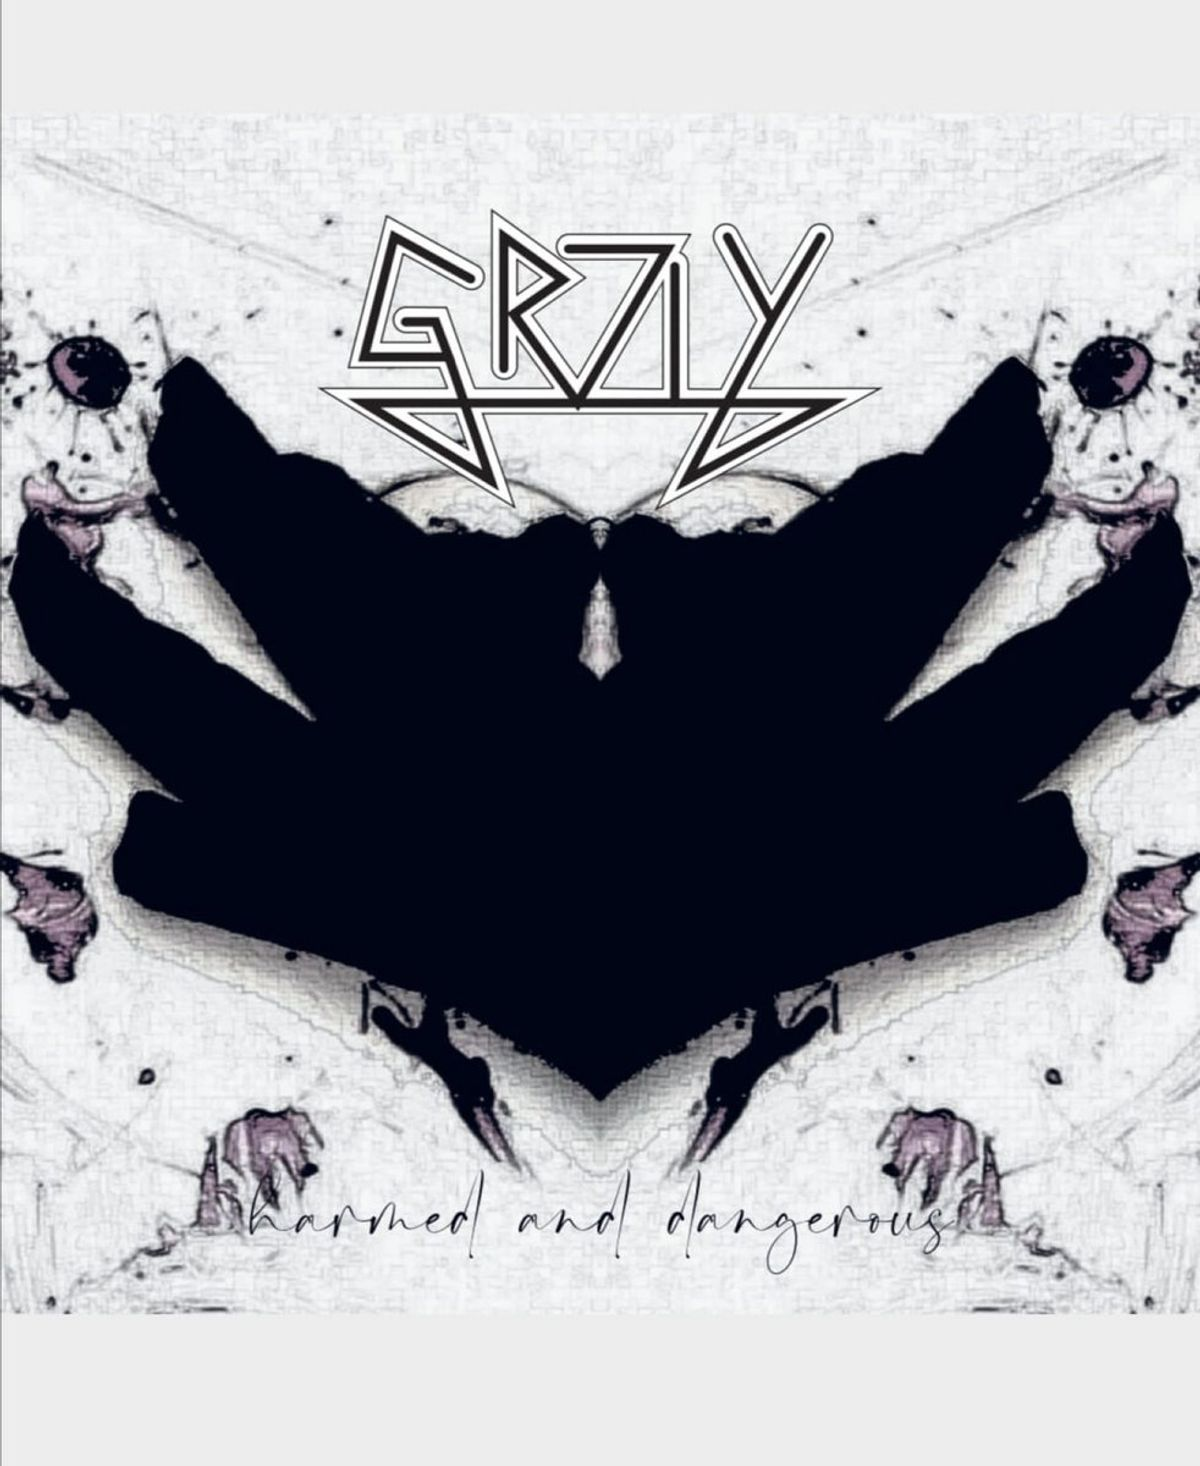 GRZLY - 'Harmed And Dangerous'